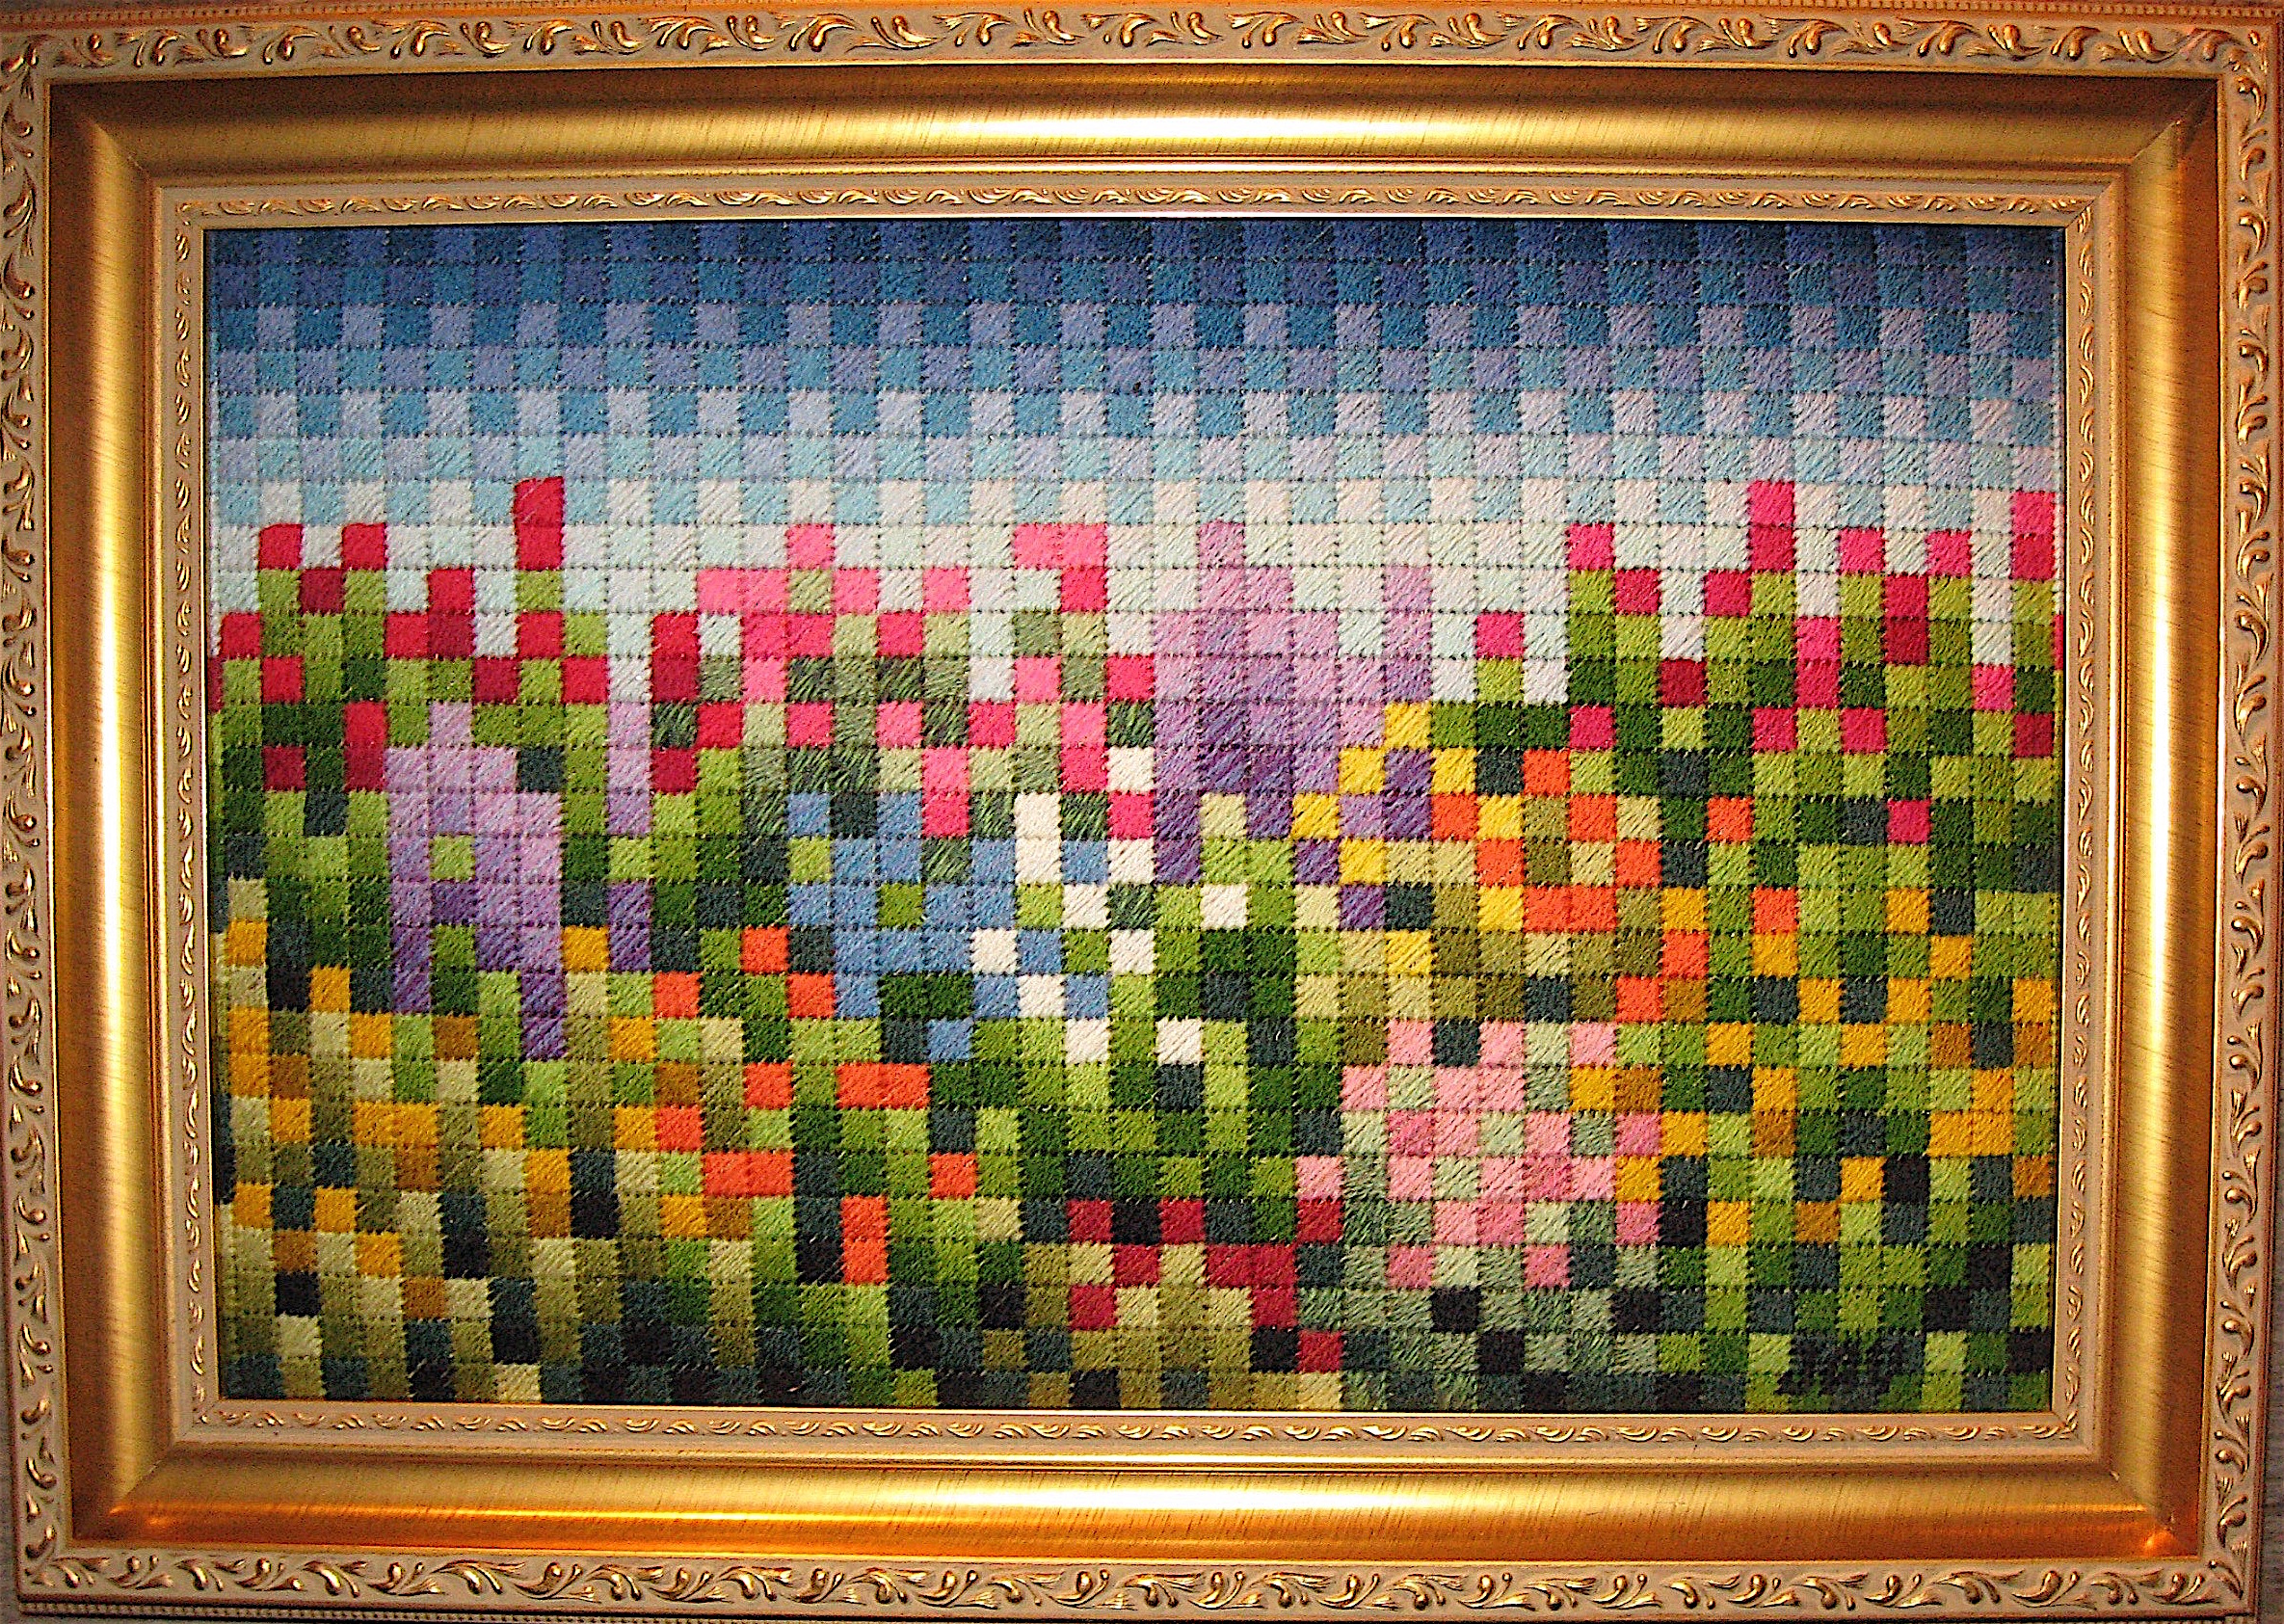 Pixelated Garden